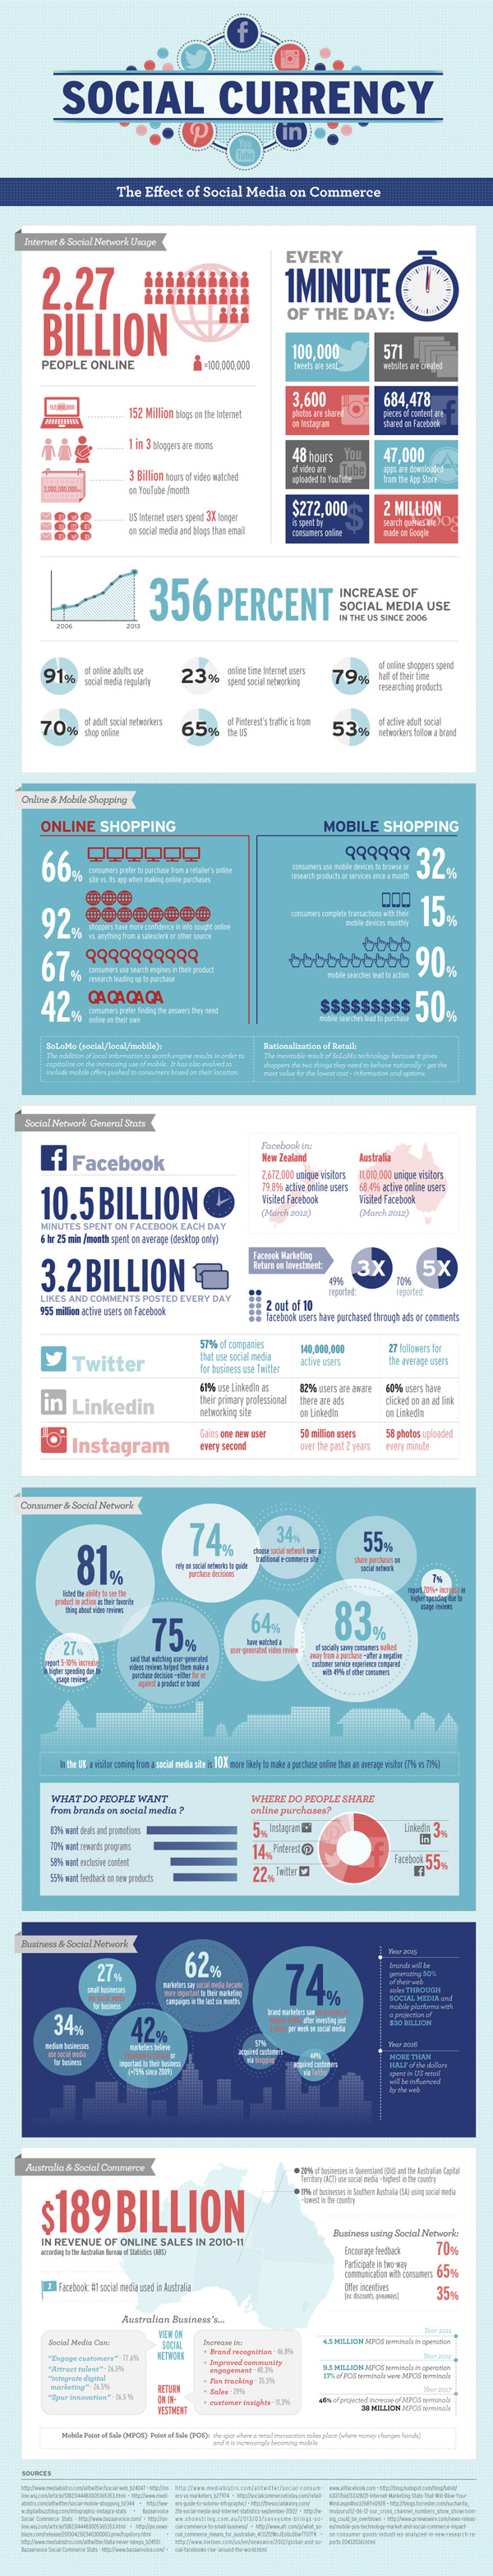 Social Currency: The effect of Social Media on commerce